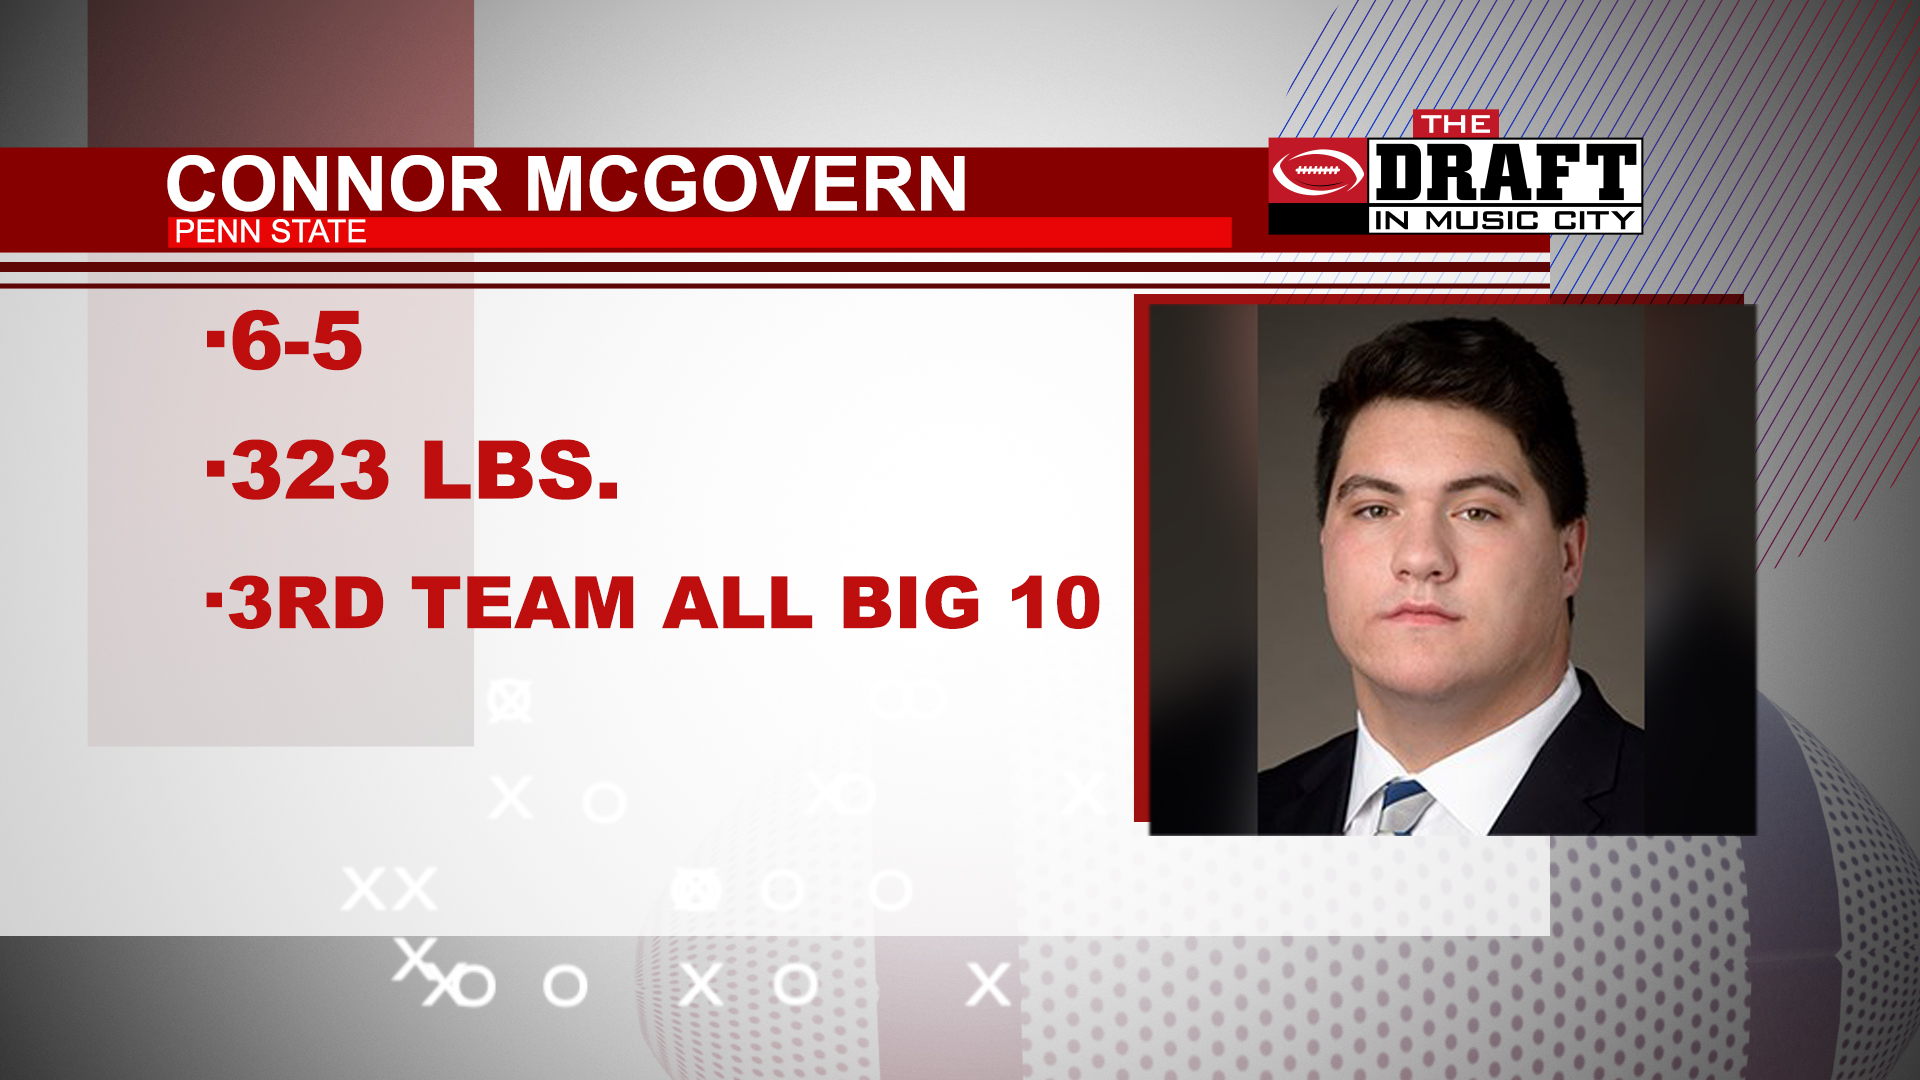 Connor McGovern Draft Music City